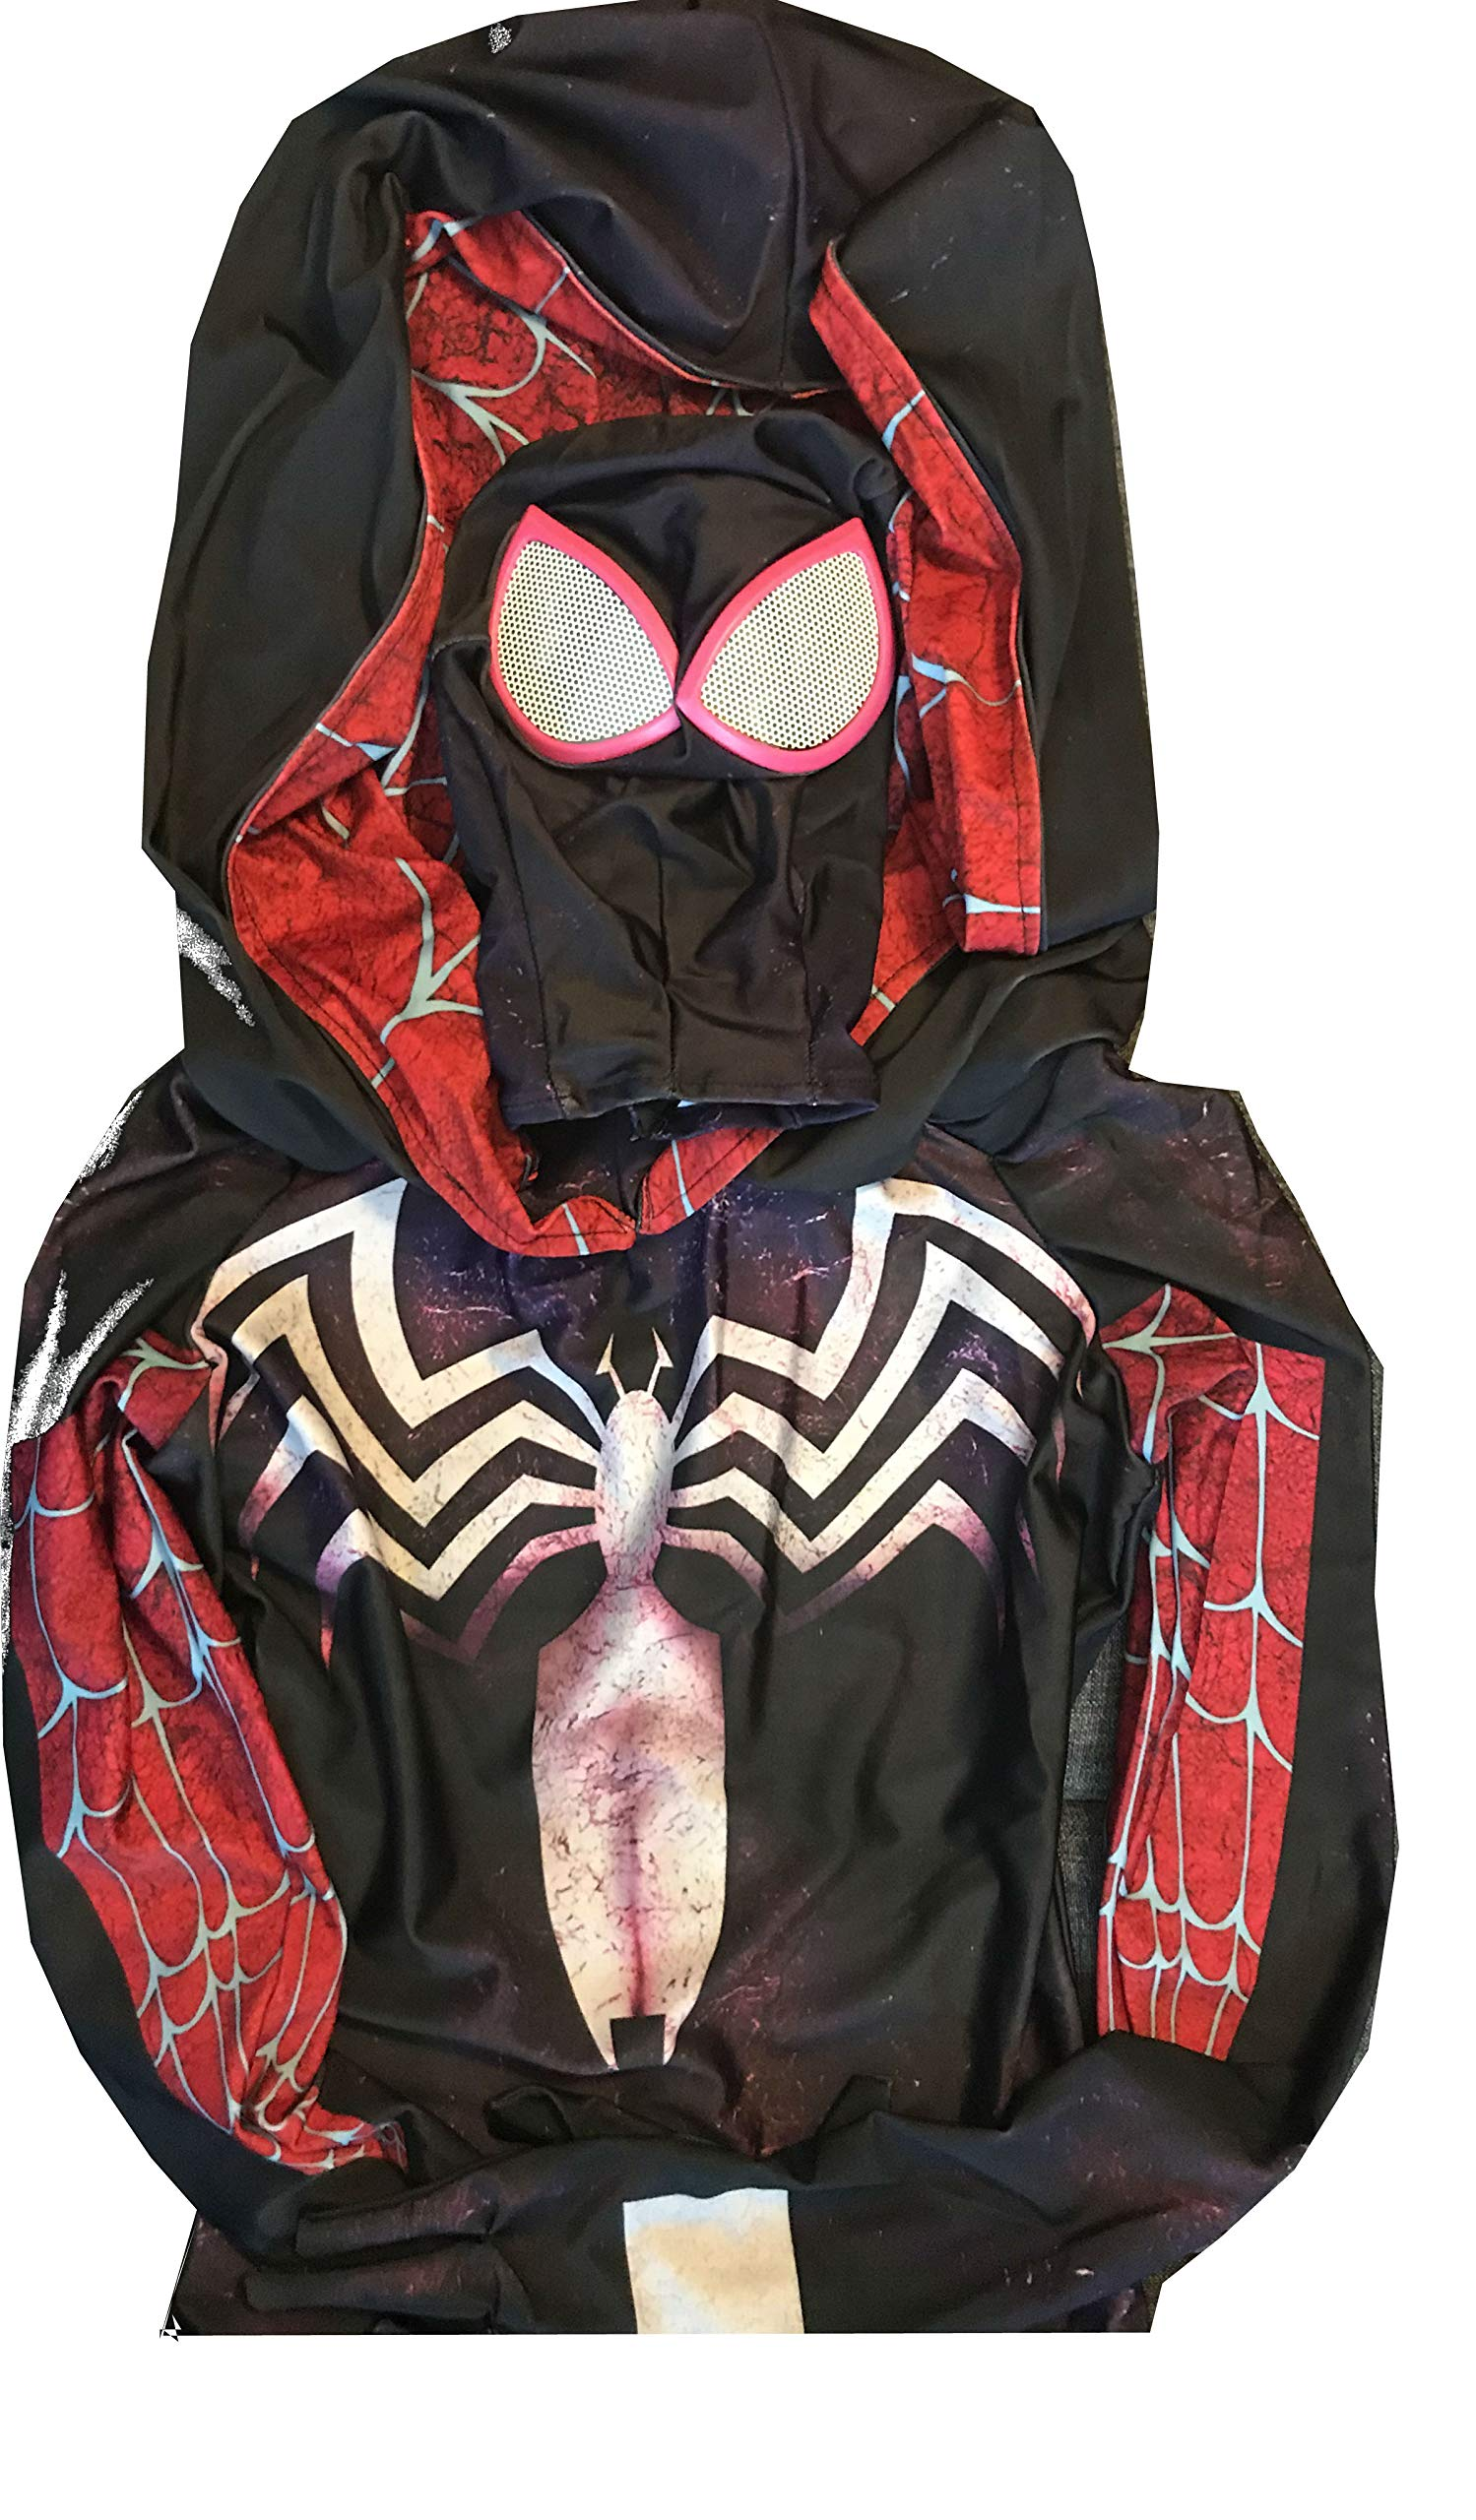 - 81VRnuWK99L - Gwen Stacy Cosplay Costume Suit w/Hood, Mask, Lenses | Gwen Stacy Venom Spiderman Cosplay